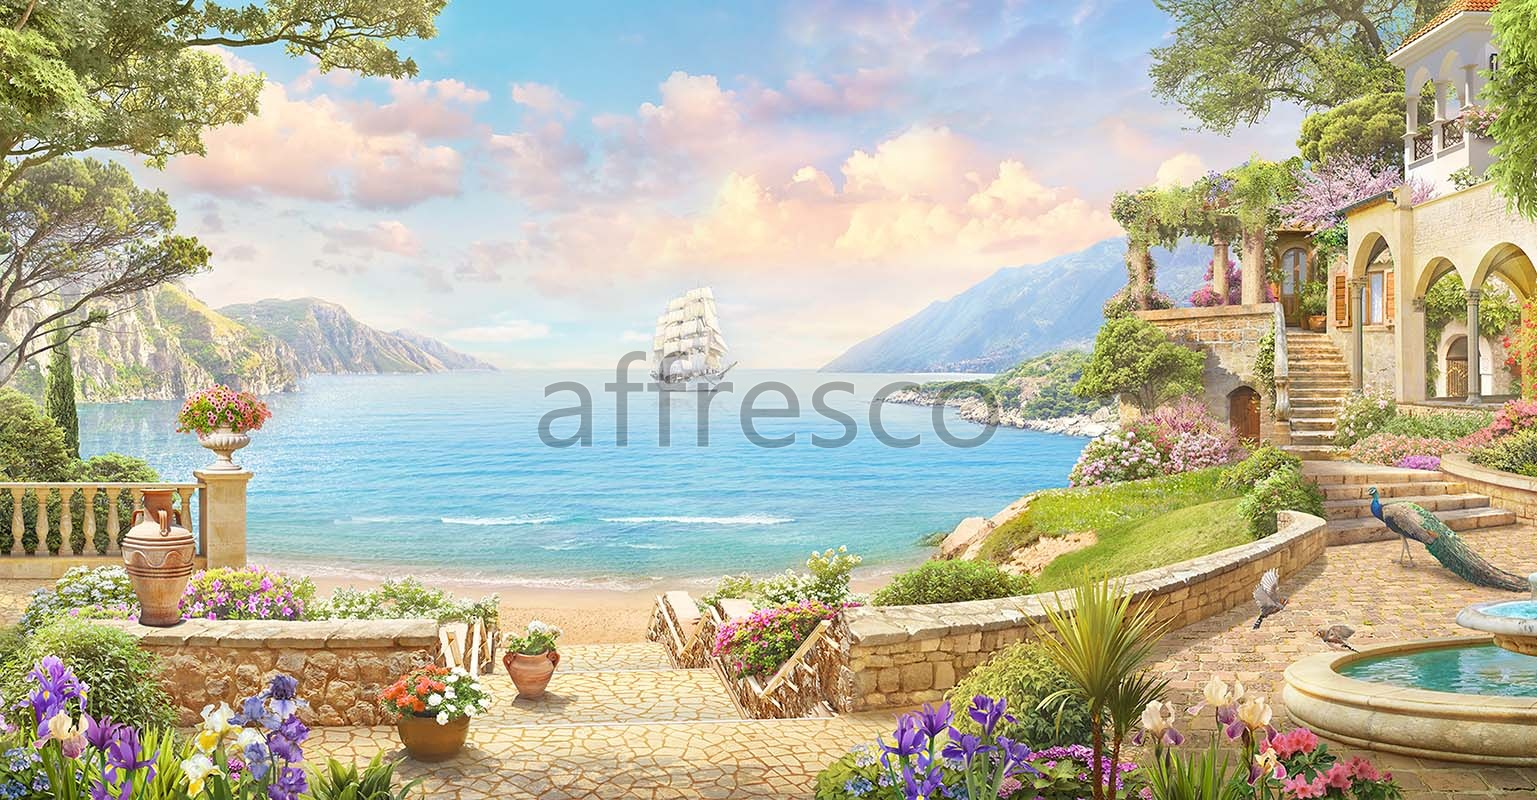 6873 | The best landscapes | Sailboat in the distance | Affresco Factory